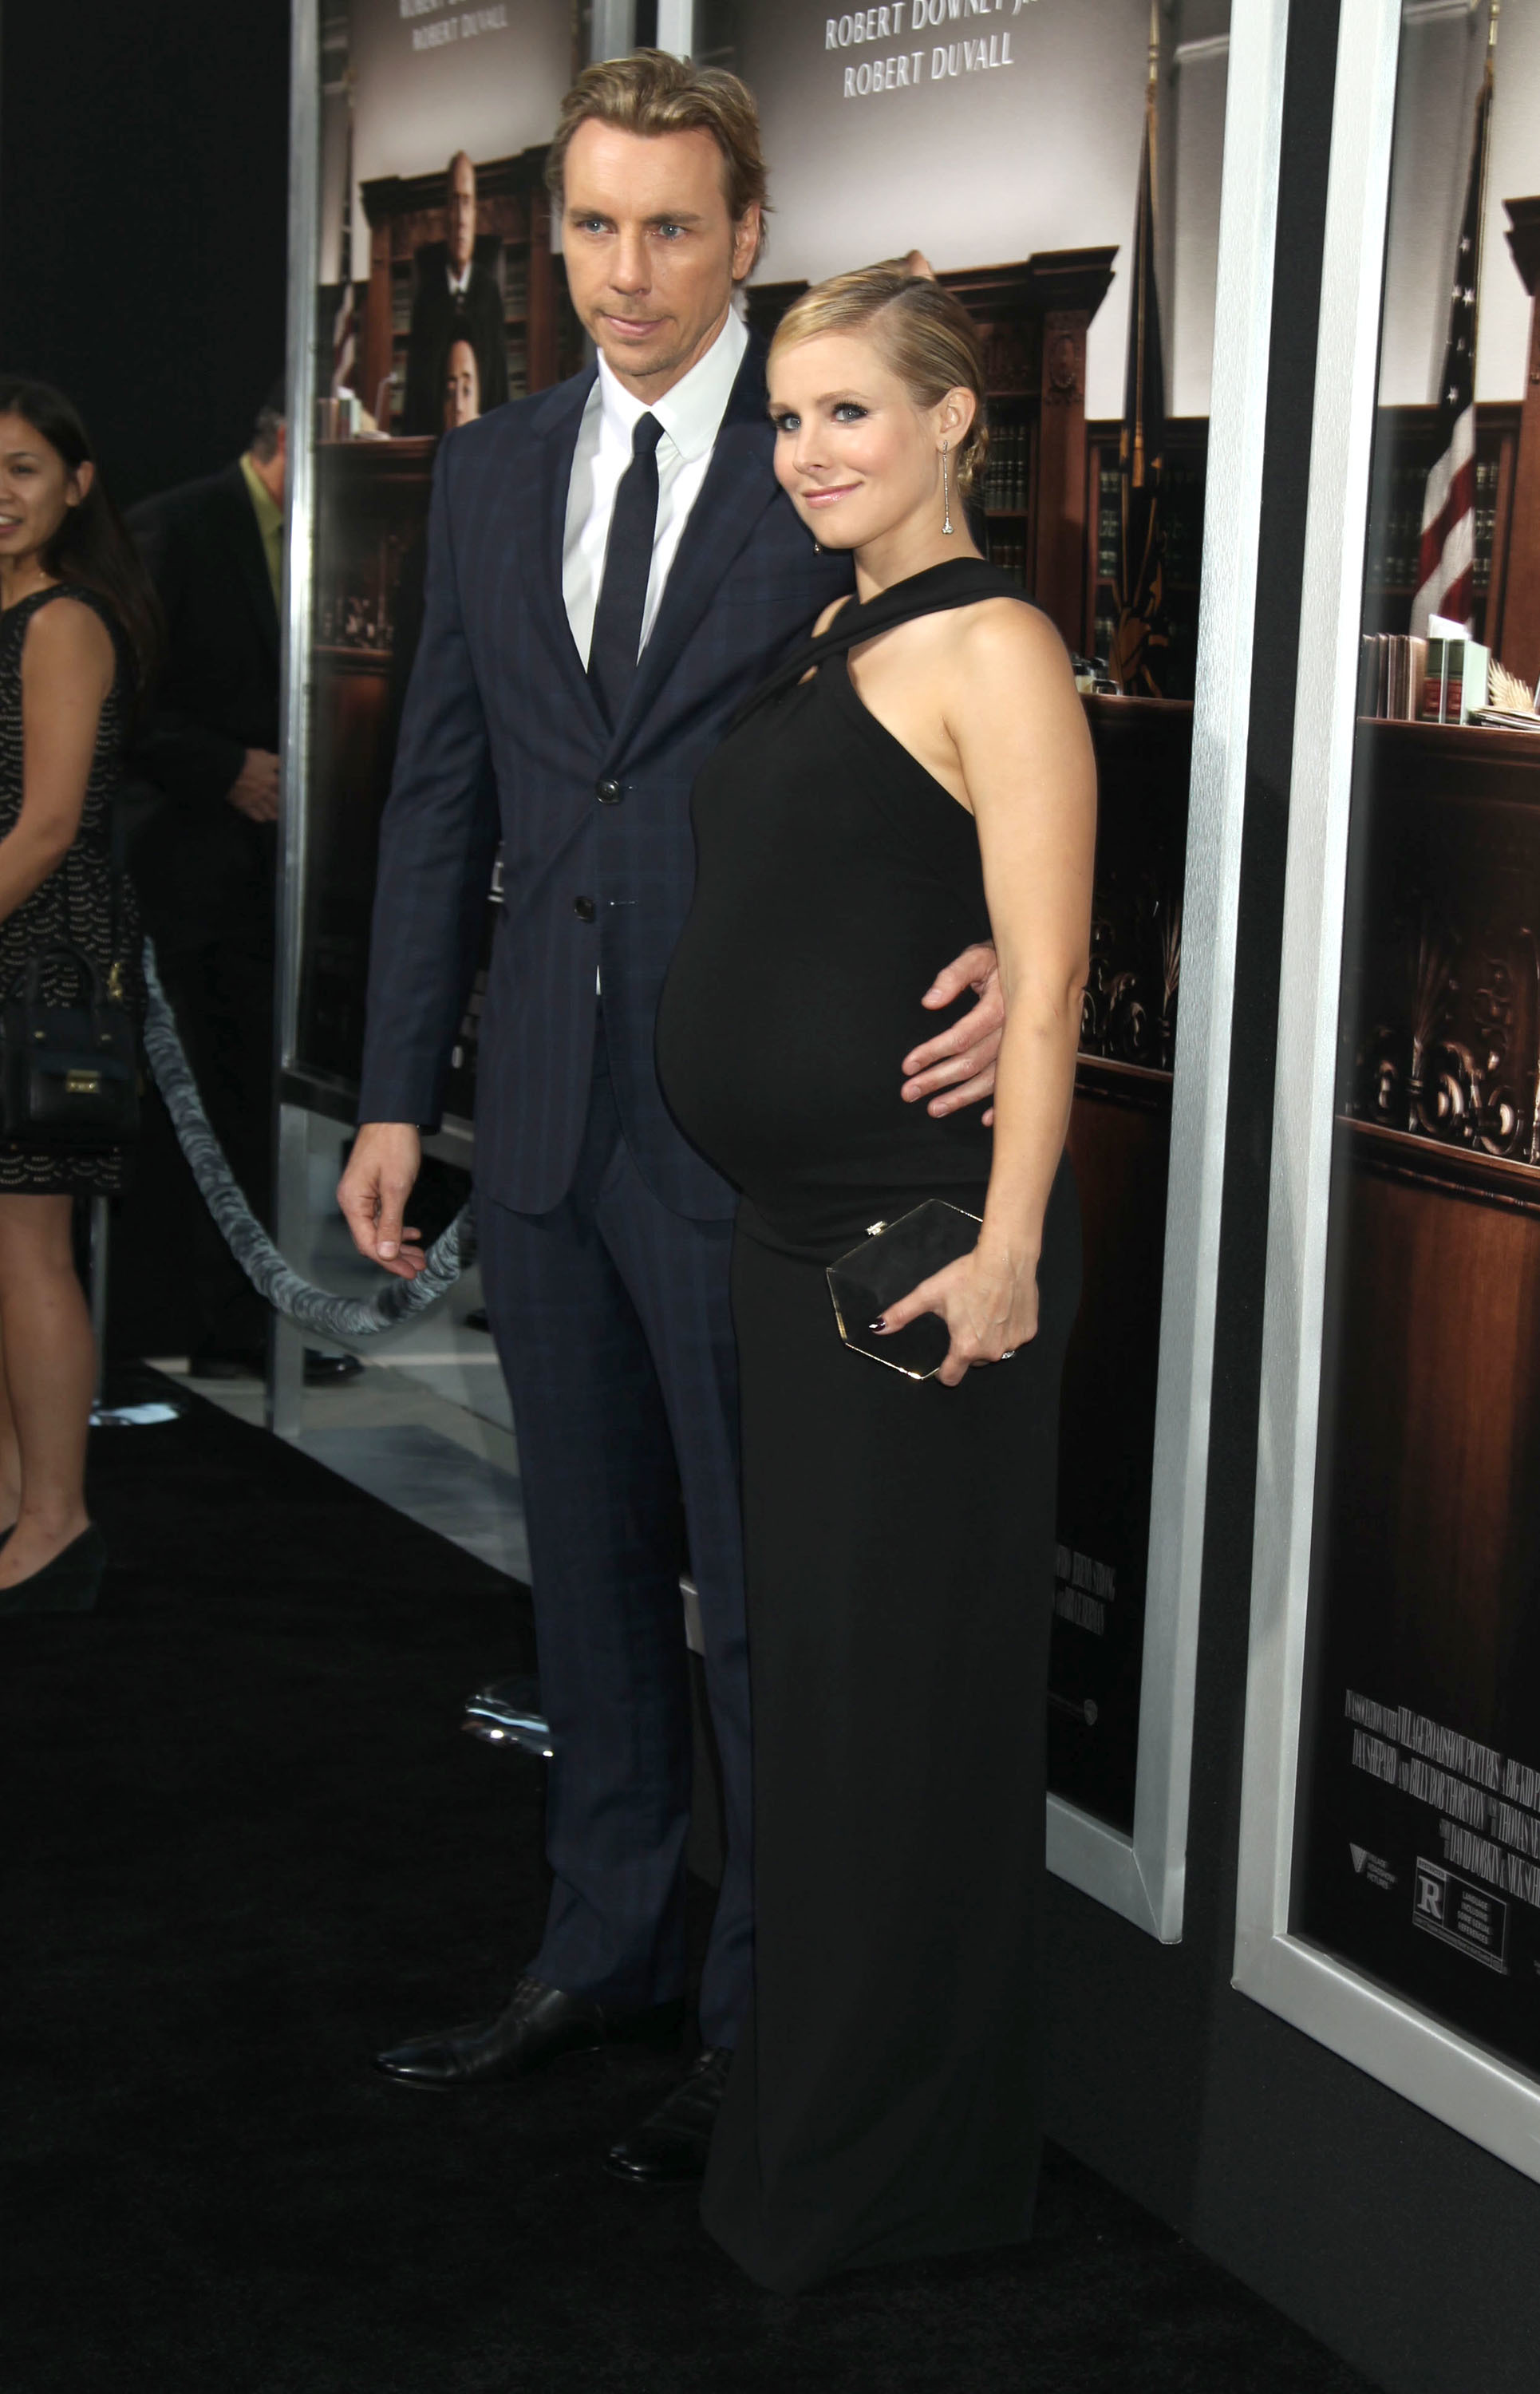 Kristen Bell shows off chic bump style at 'The Judge' premiere